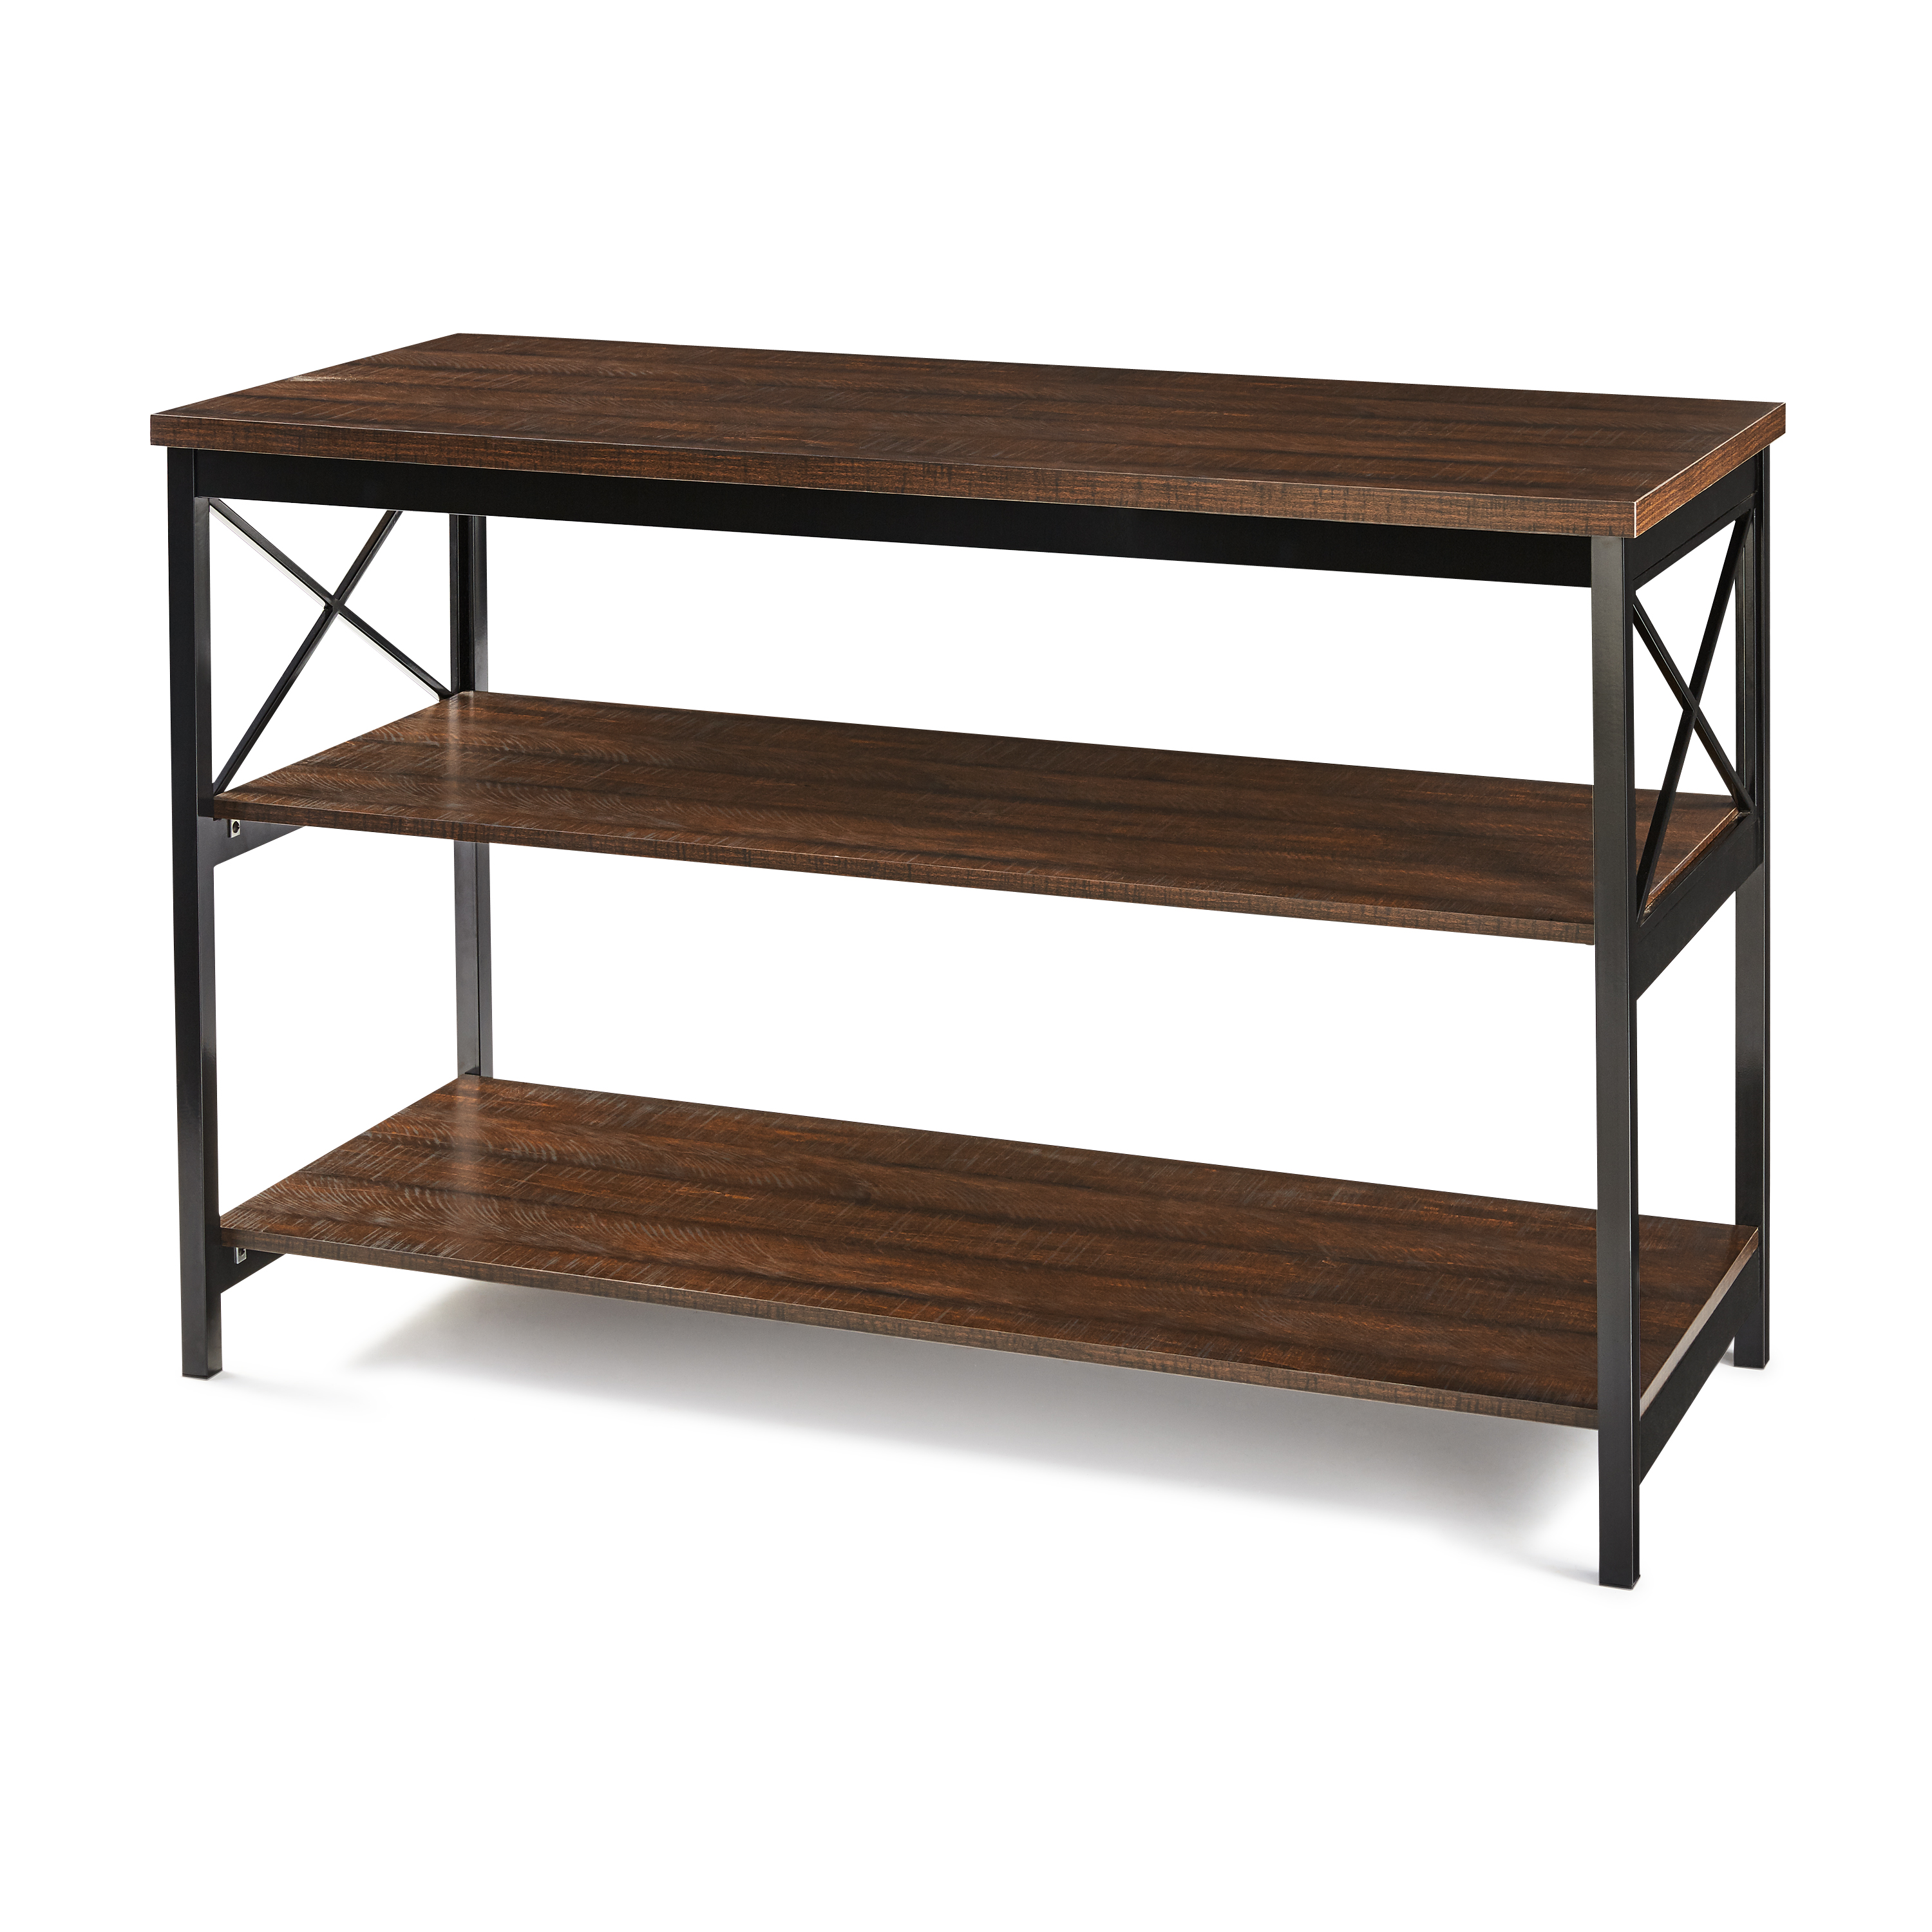 "Mainstays 3-Shelf TV Console Table for Most 42"" TVs, Sawcut Brown"